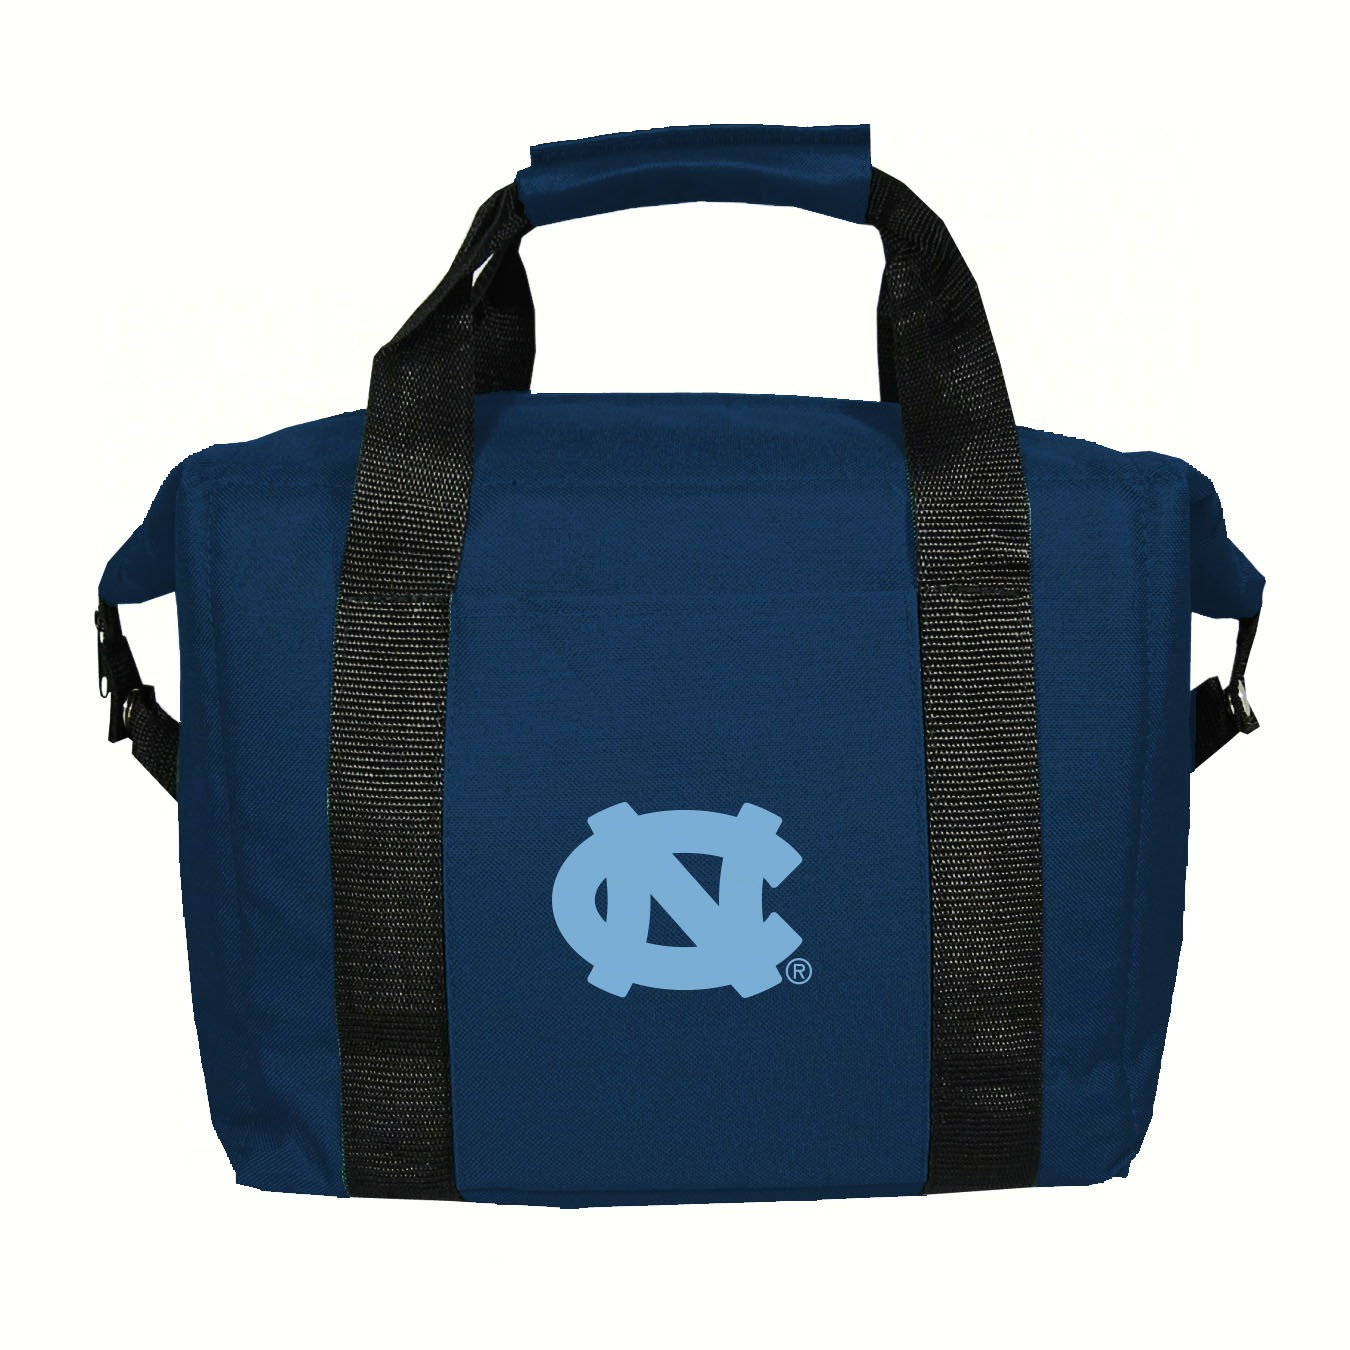 Kooler Bag - North Carolina Tar Heels (Holds a 12 pack)